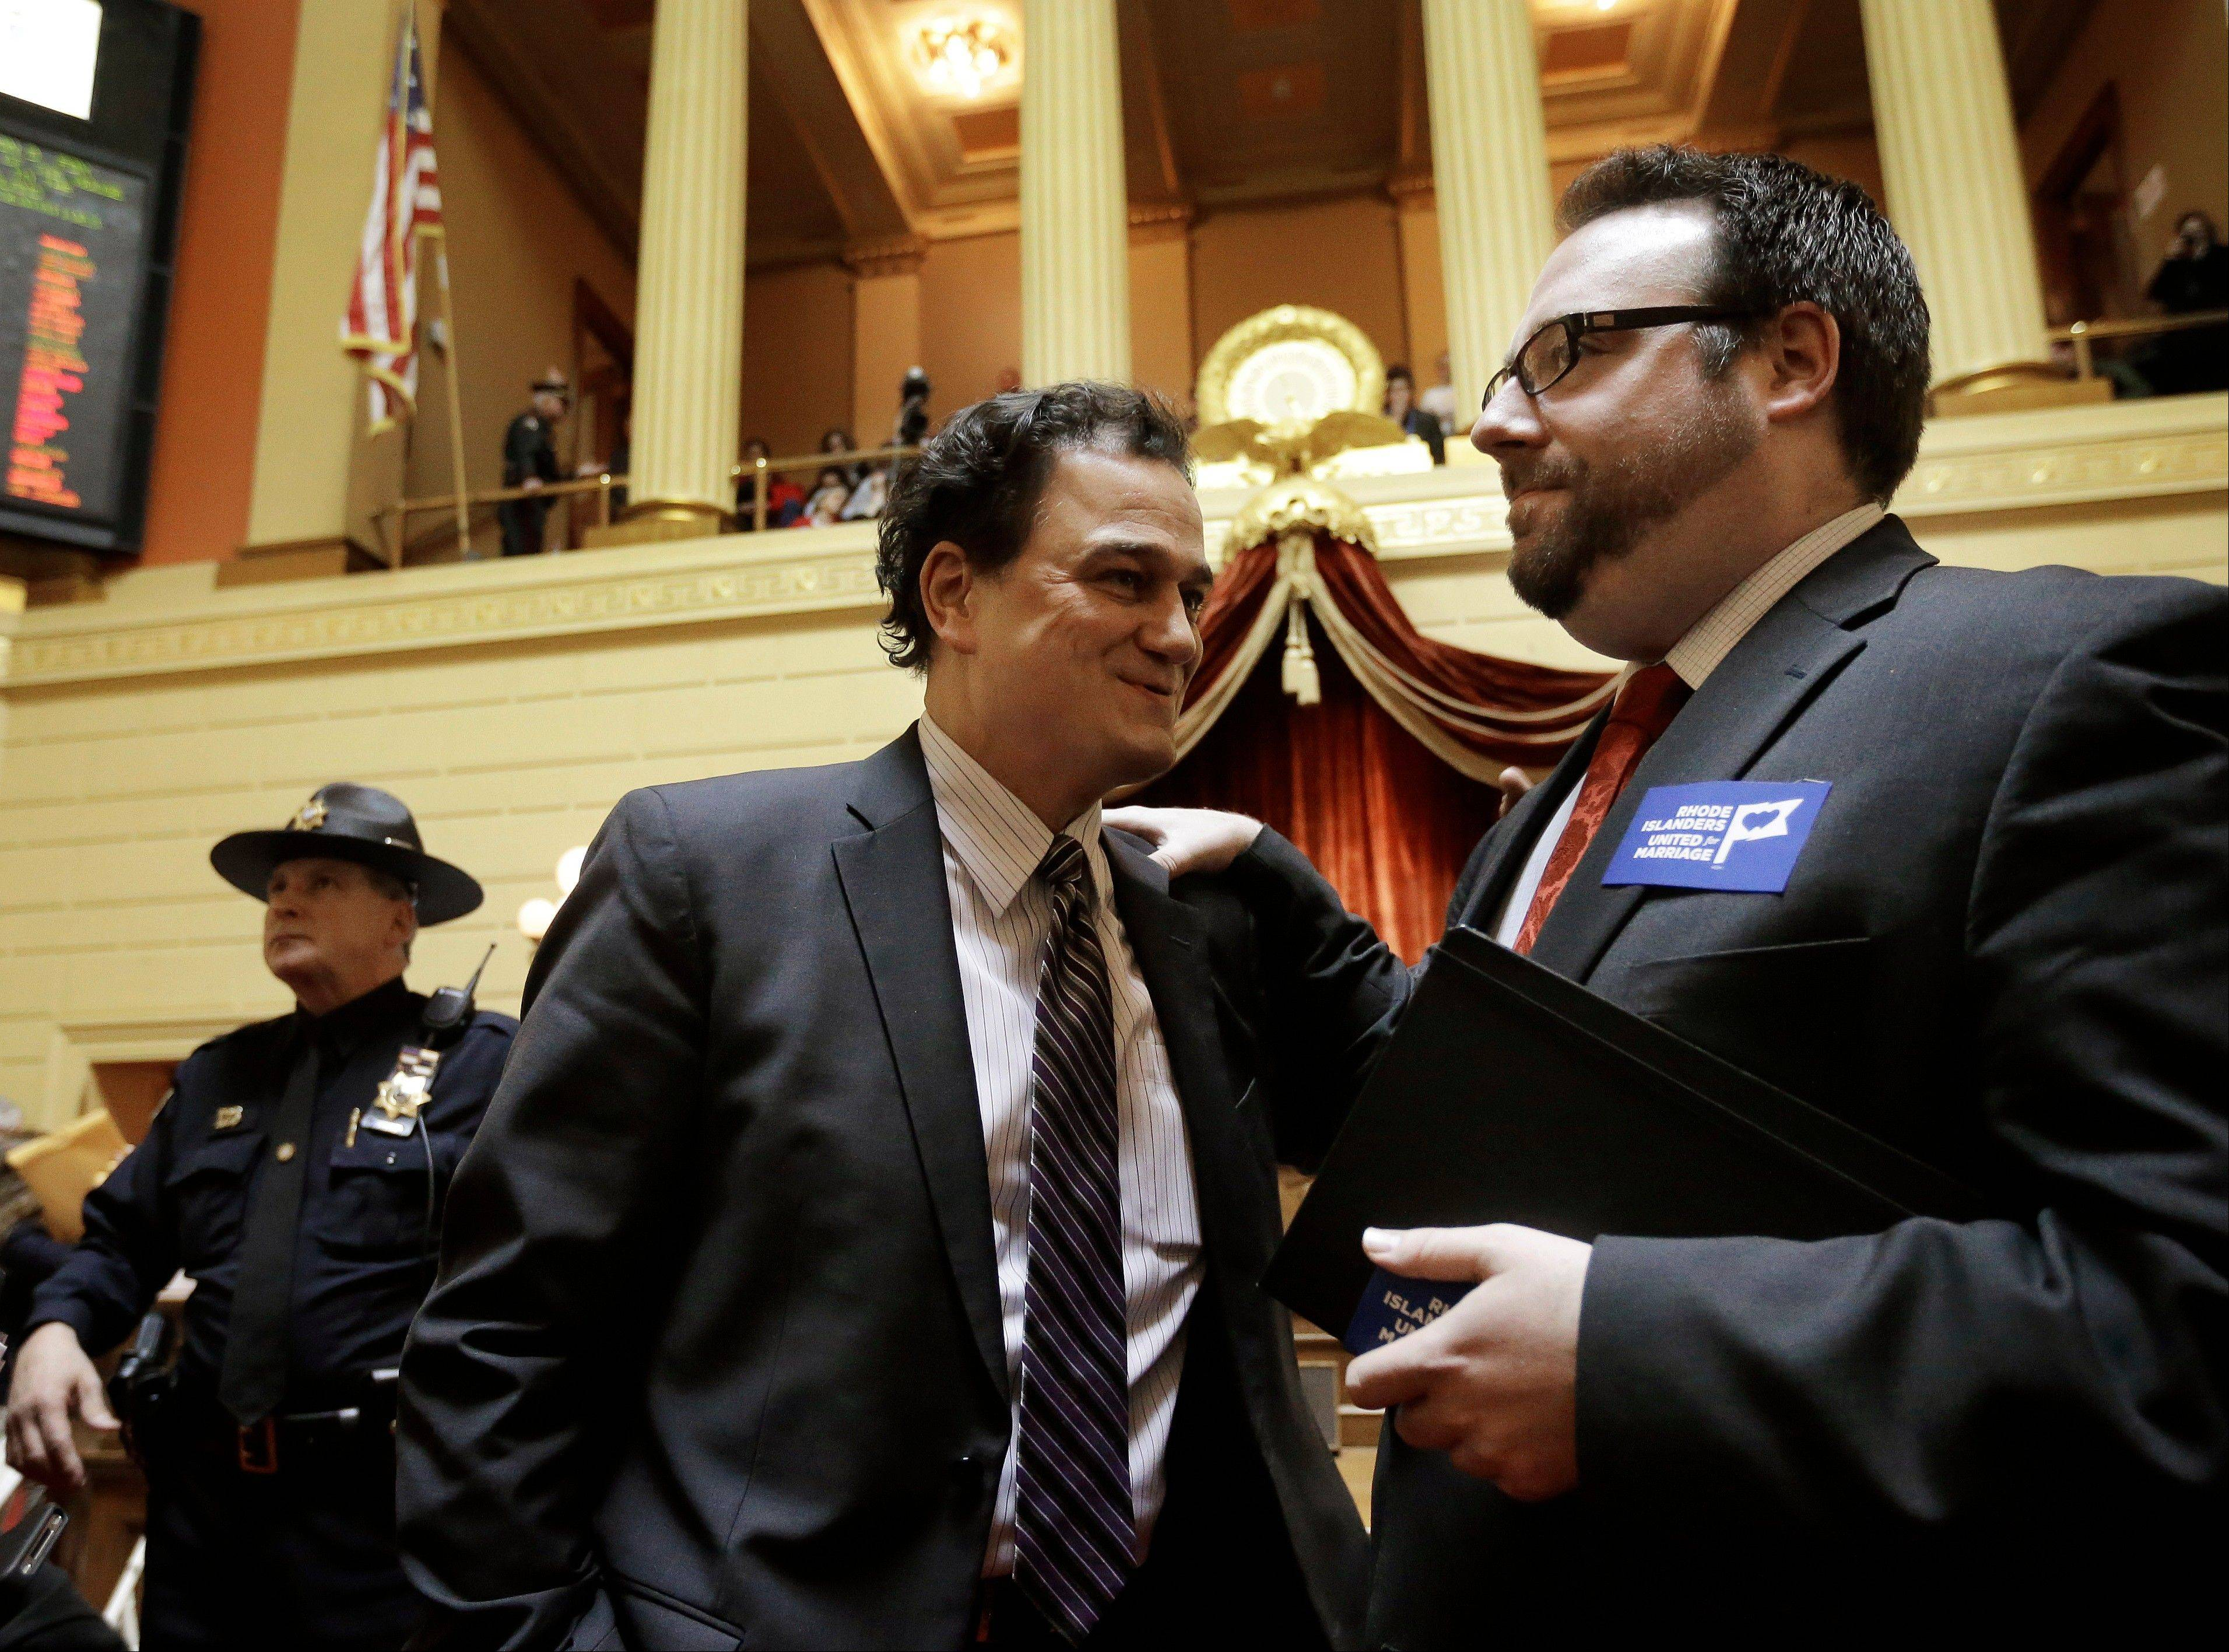 Rhode Island speaker of the House Gordon Fox, center, speaks with Ray Sullivan, campaign director for Rhode Islanders United for Marriage, right, in the House Chamber at the Statehouse, in Providence, R.I., Thursday, Jan. 24, 2013. Legislation to allow gay marriage in the state passed a House vote Thursday.